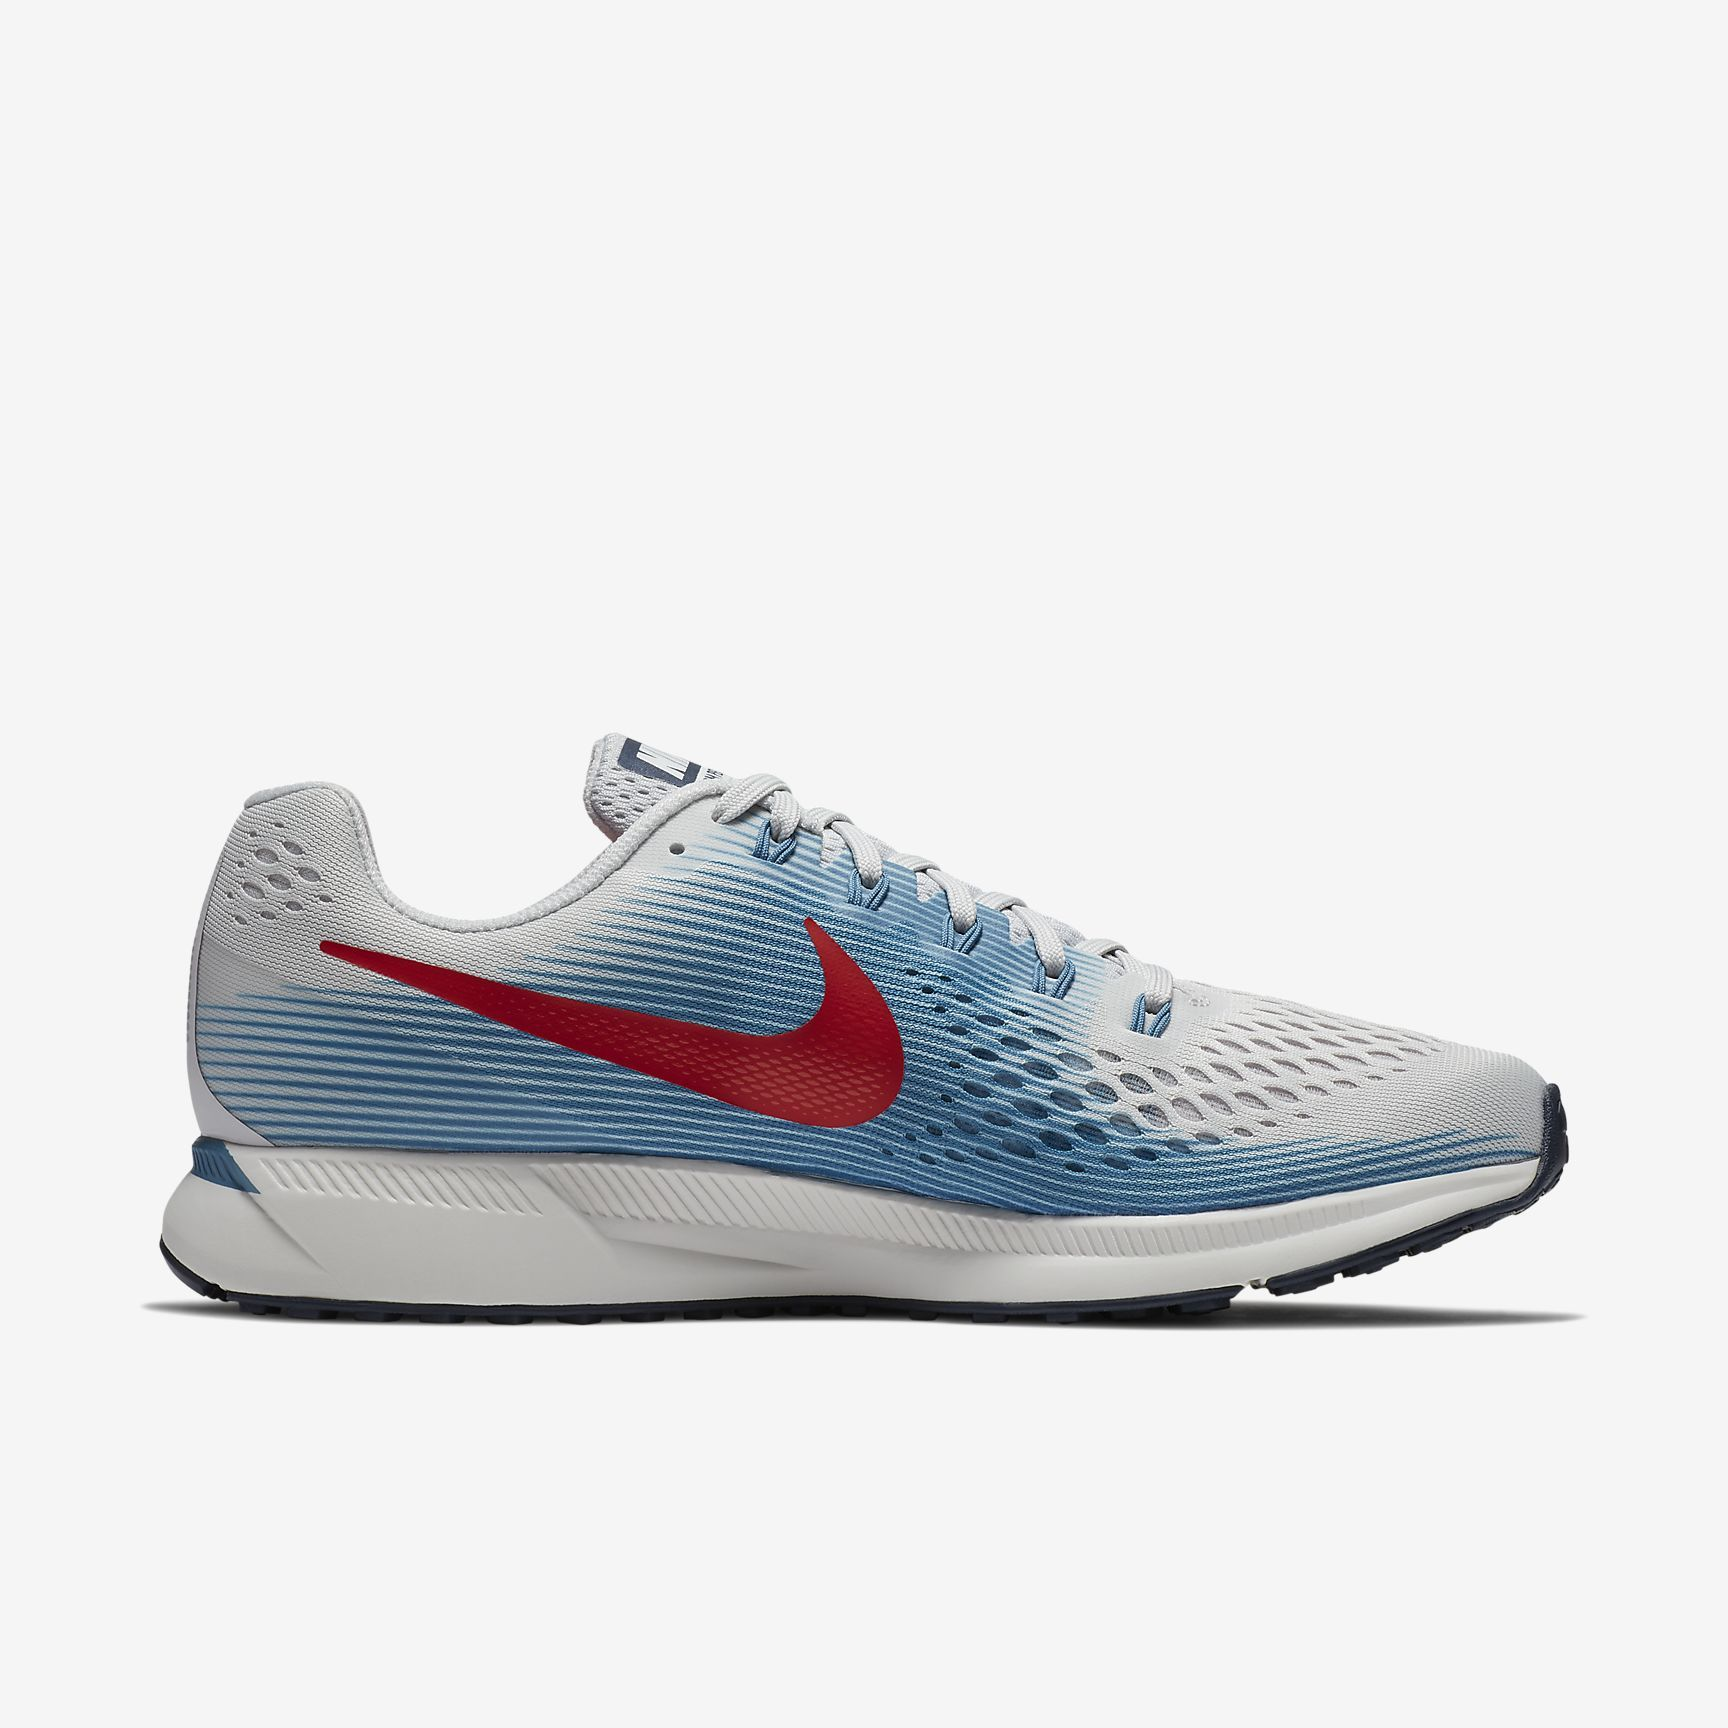 Nike Air Zoom Pegasus 34 in Grau Rot